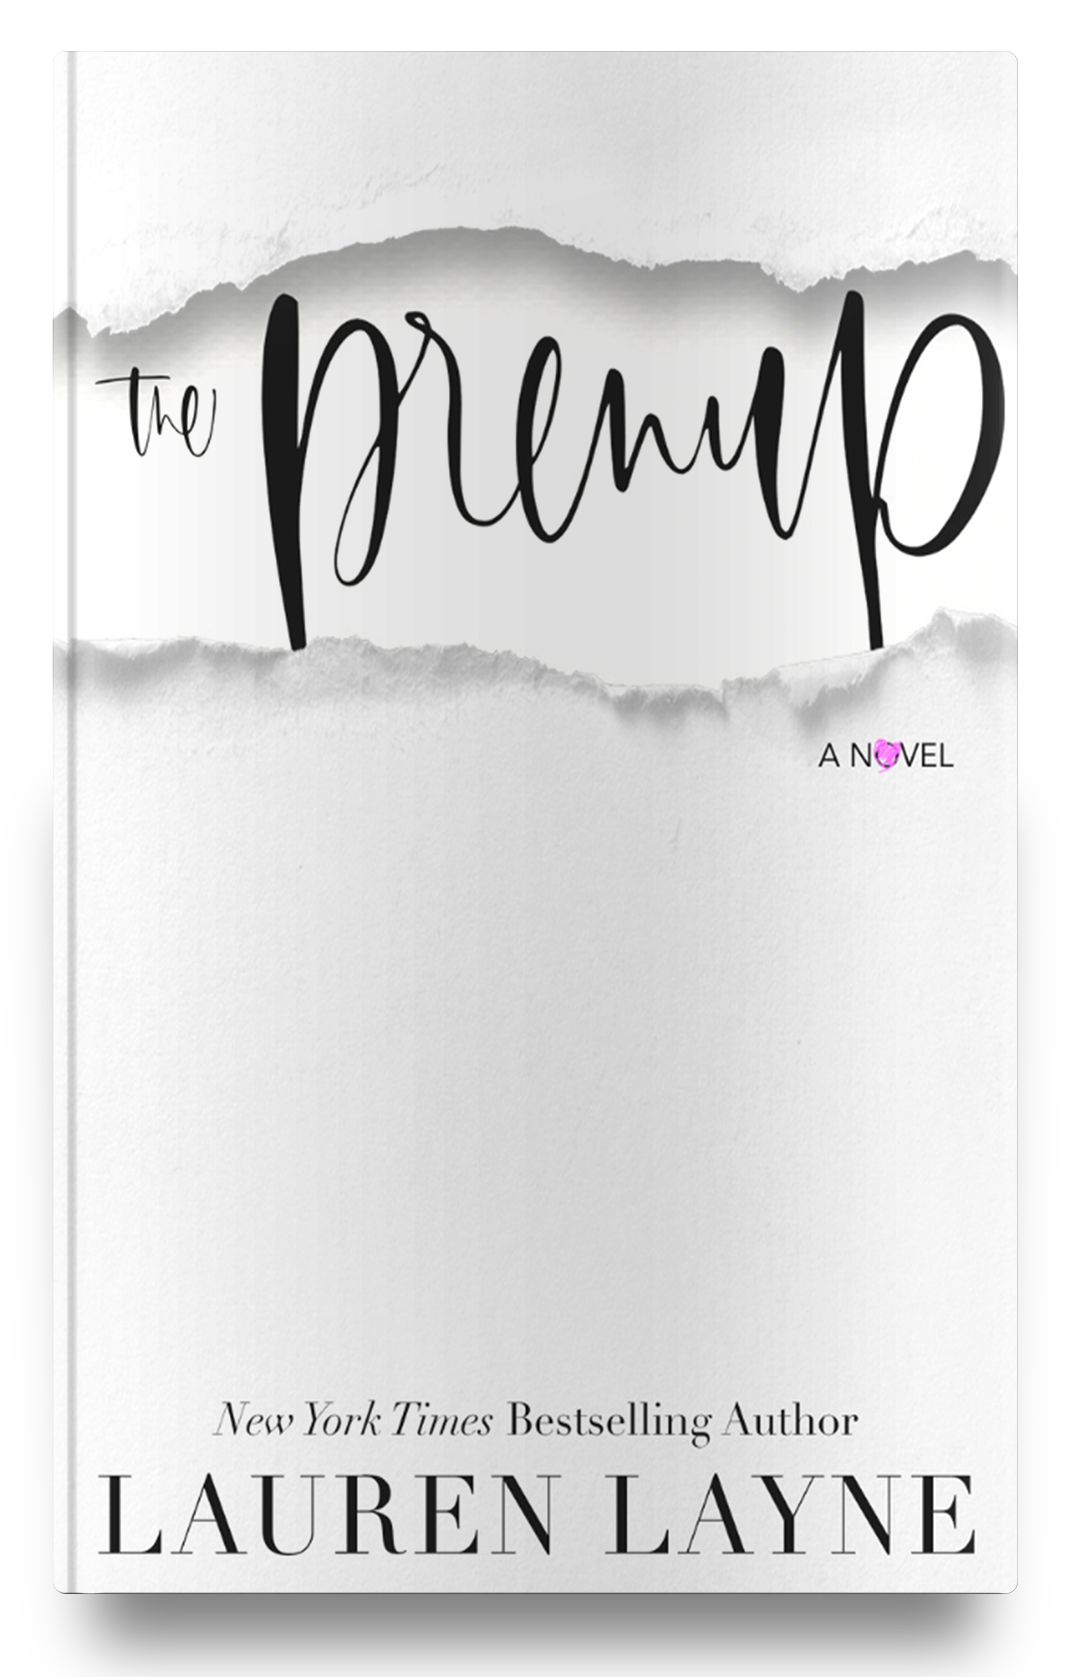 Cover - The Prenup - Hardcover.png